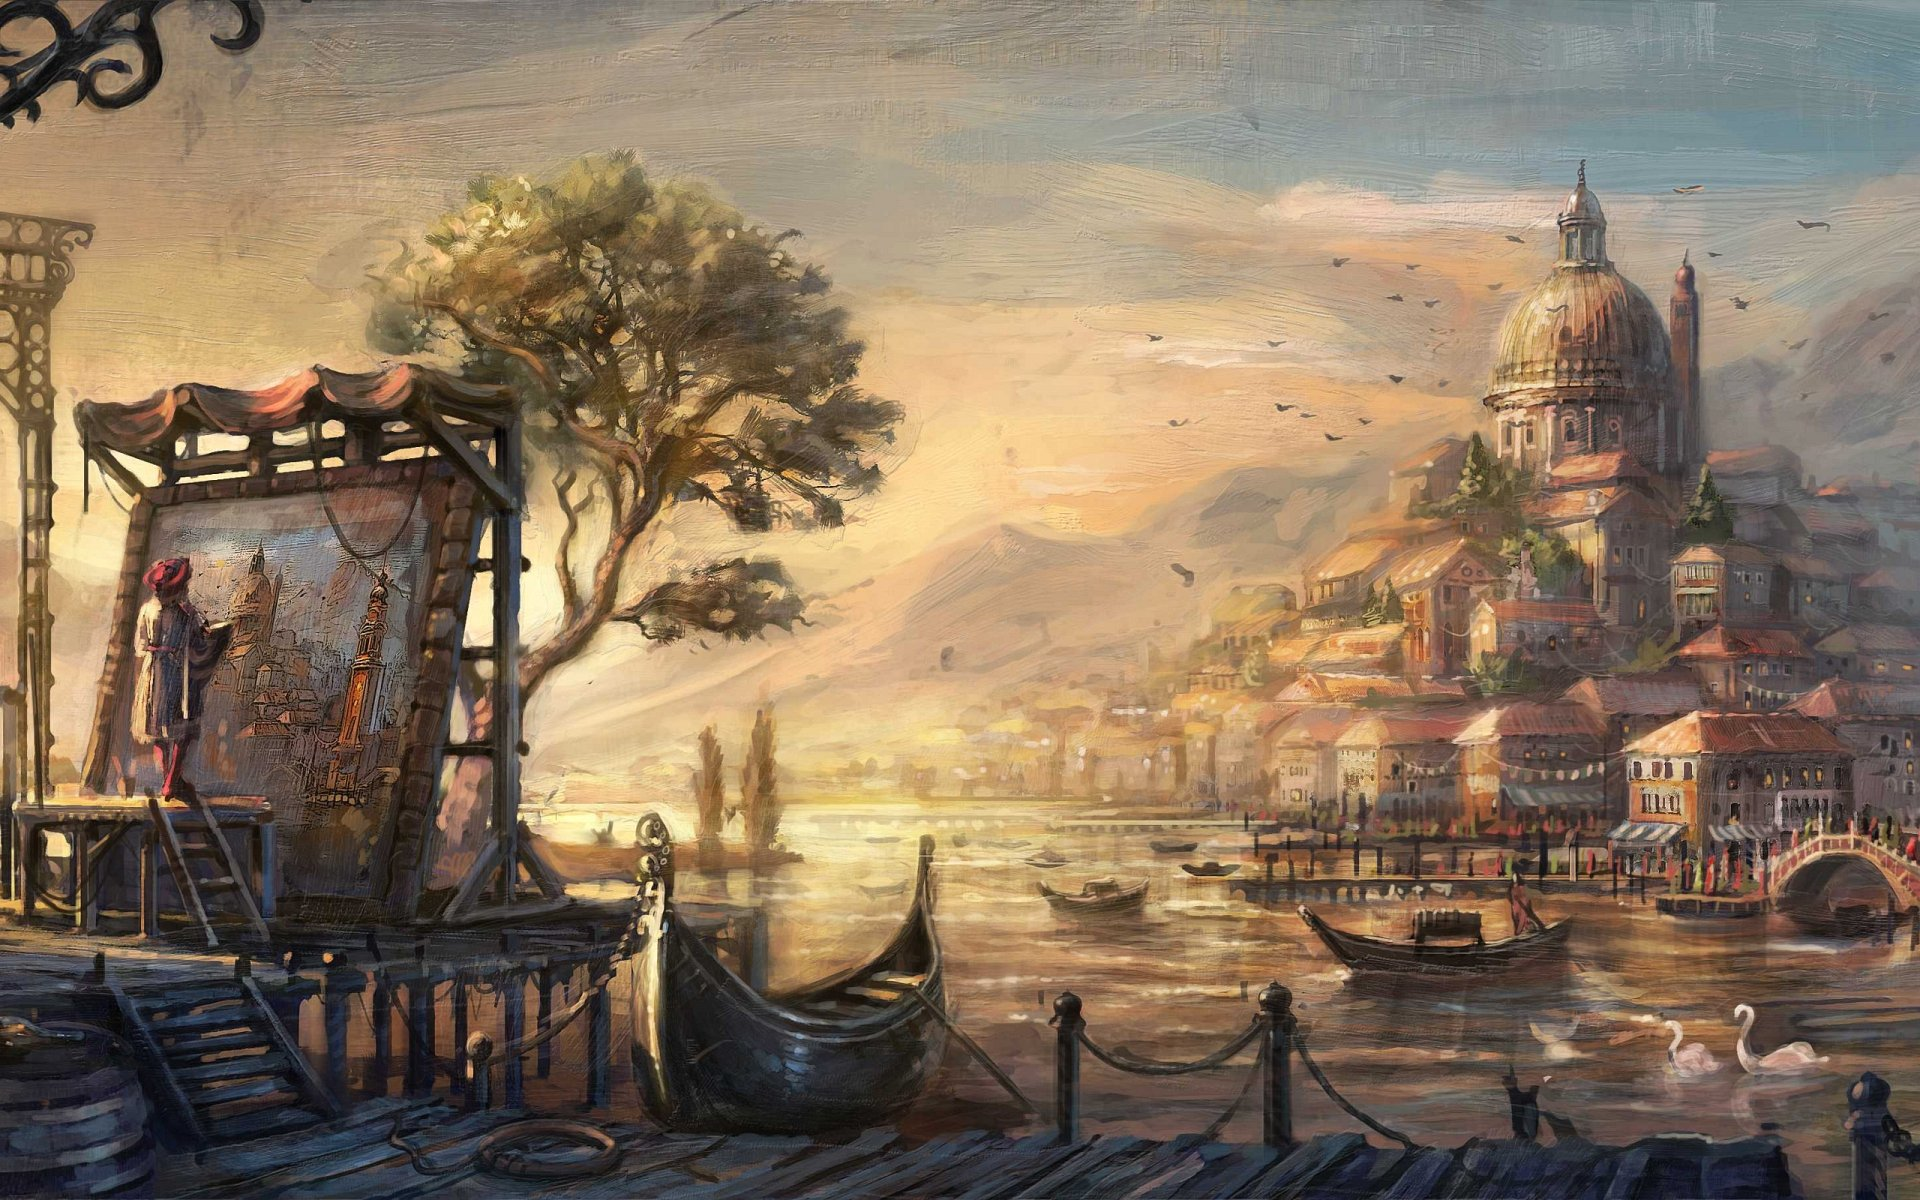 famous painting artist painter brush oil on canvas type wallpaper for 1920x1200